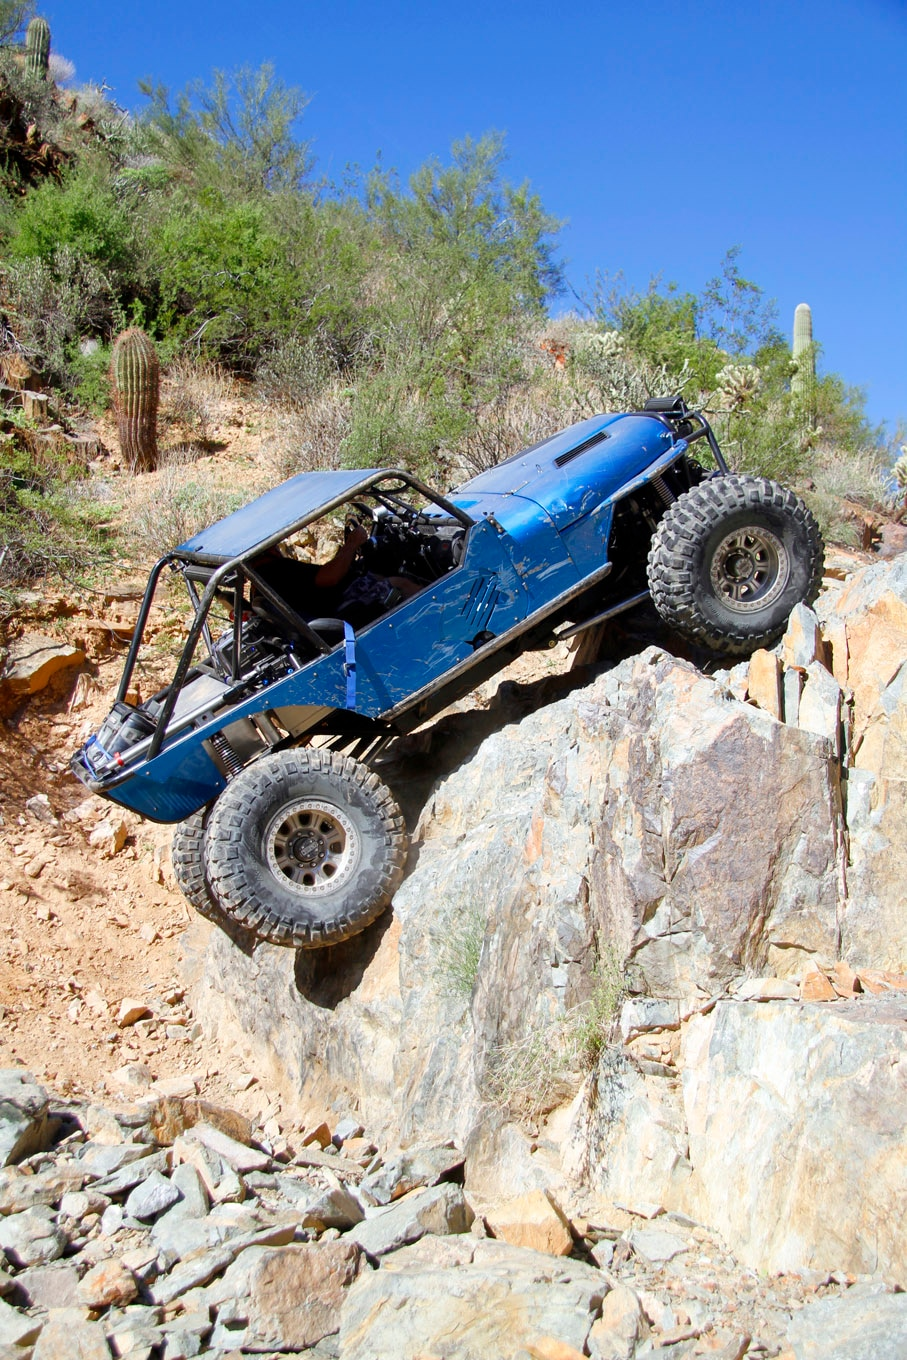 James Martinez takes the hard line on the biggest obstacle on Collateral Damage in his 1976 CJ-7. The Jeep has been tubed in the rear and linked with ORI struts. Rear steering on the GM Corporate 14-Bolt axle offers him an advantage on tricky obstacles.